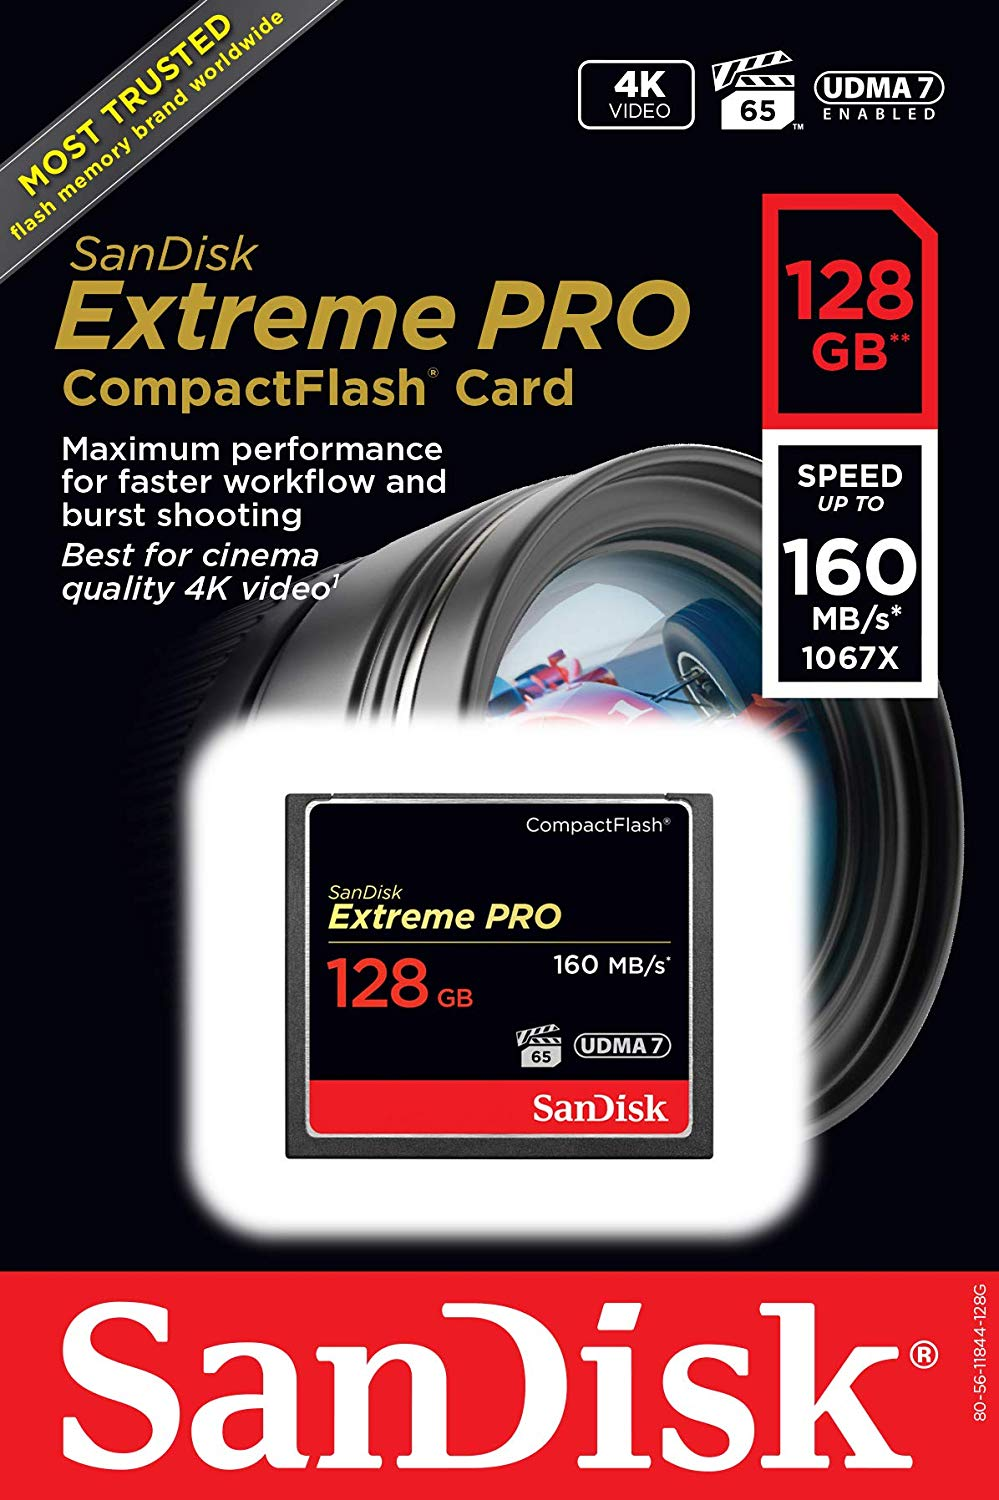 The 5 Best CF Cards in 2019 (Compact Flash Card) | VFX